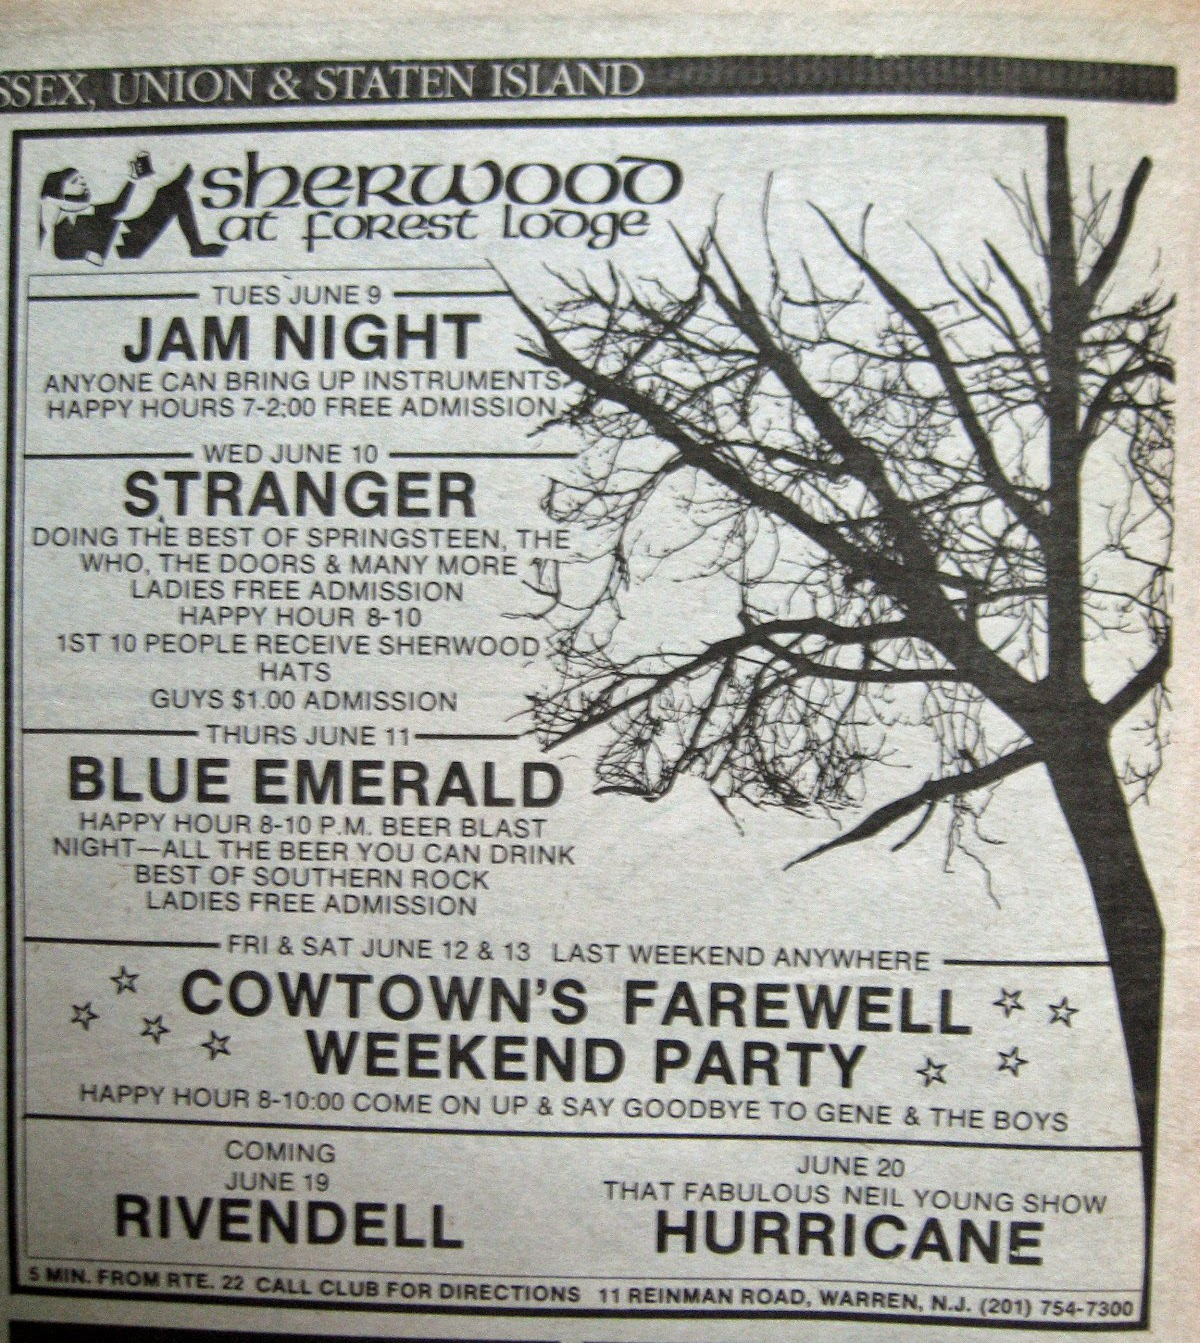 Sherwood At Forest Lodge band line up 1981